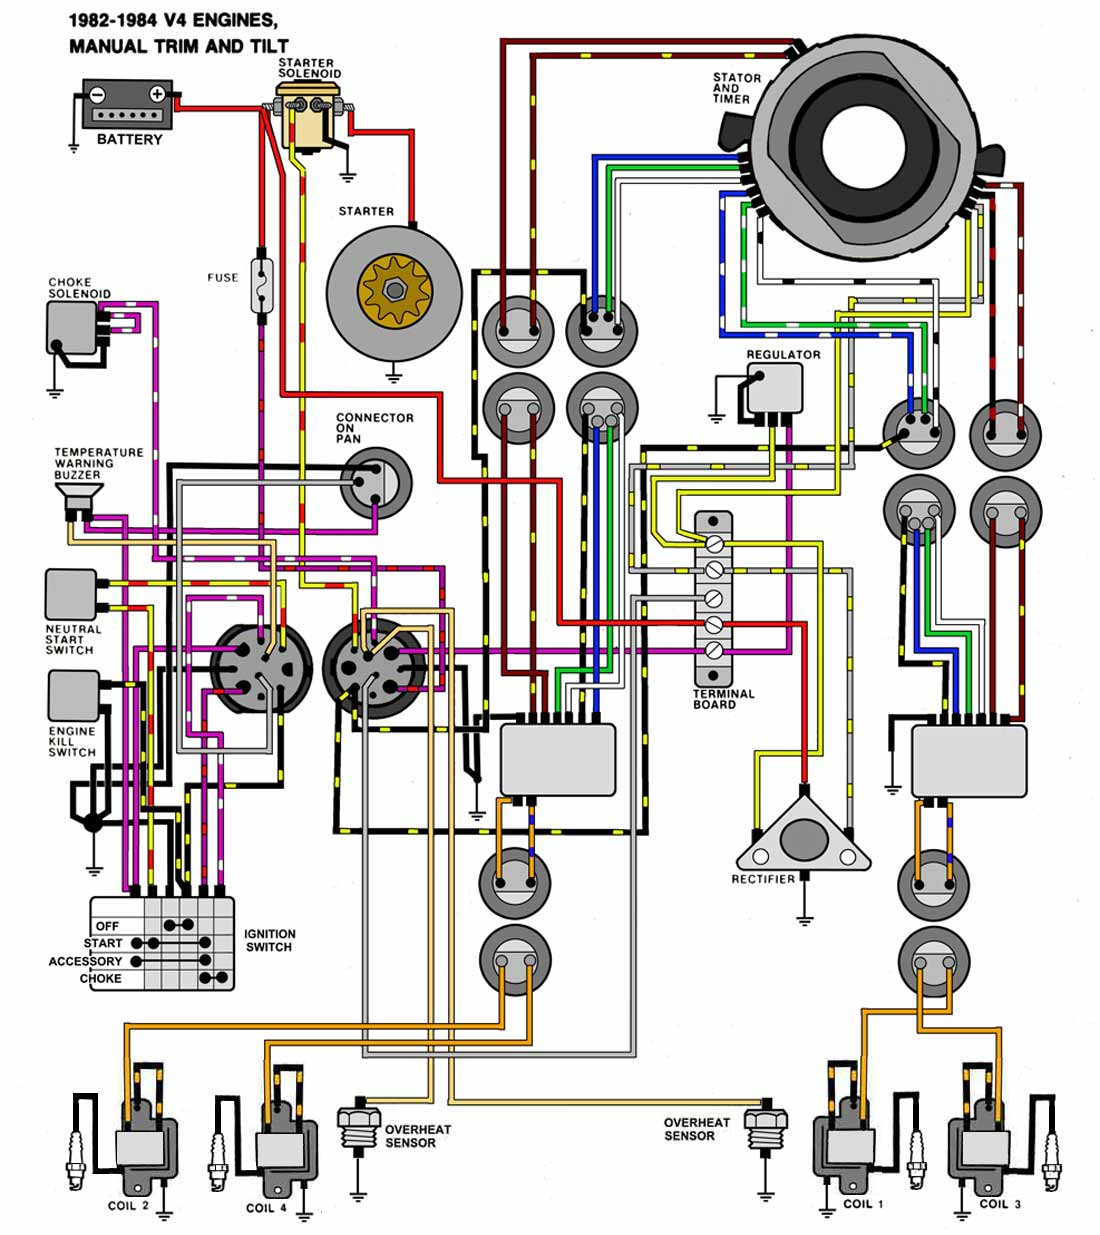 82_84_V4_NOTNT mastertech marine evinrude johnson outboard wiring diagrams johnson outboard ignition switch wiring diagram at creativeand.co